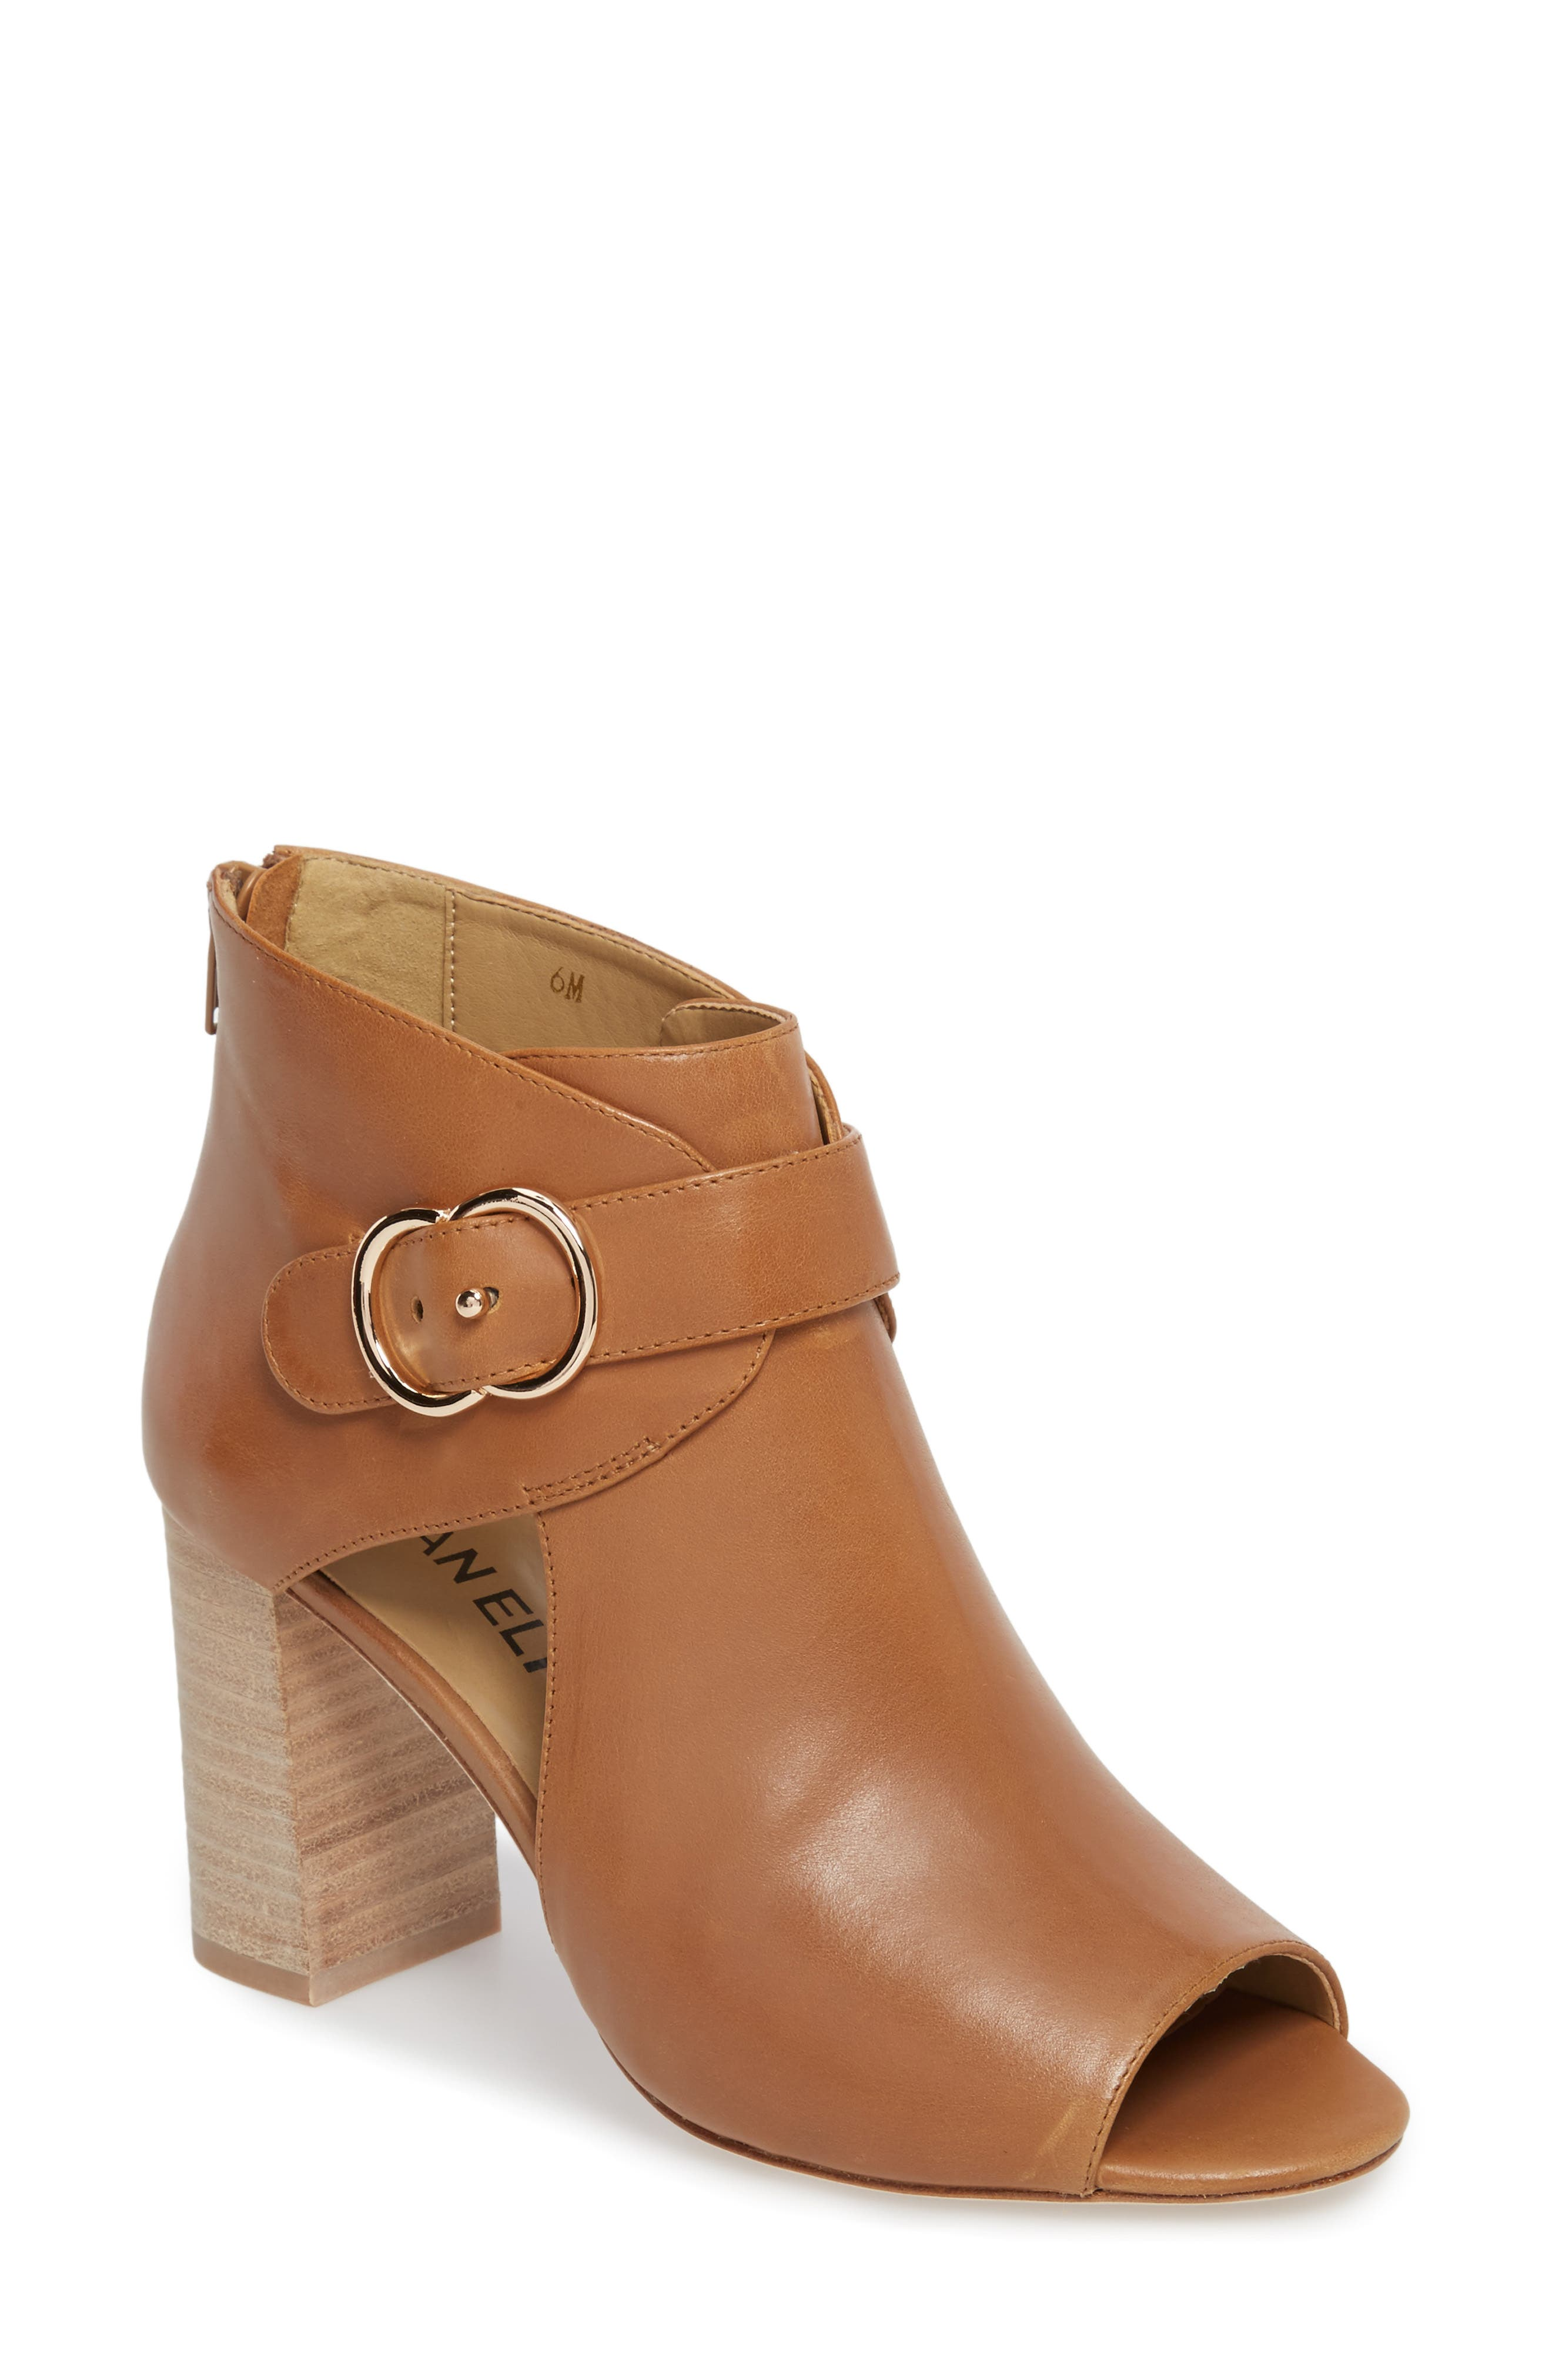 Belka Sandal,                         Main,                         color, Cuoio Leather